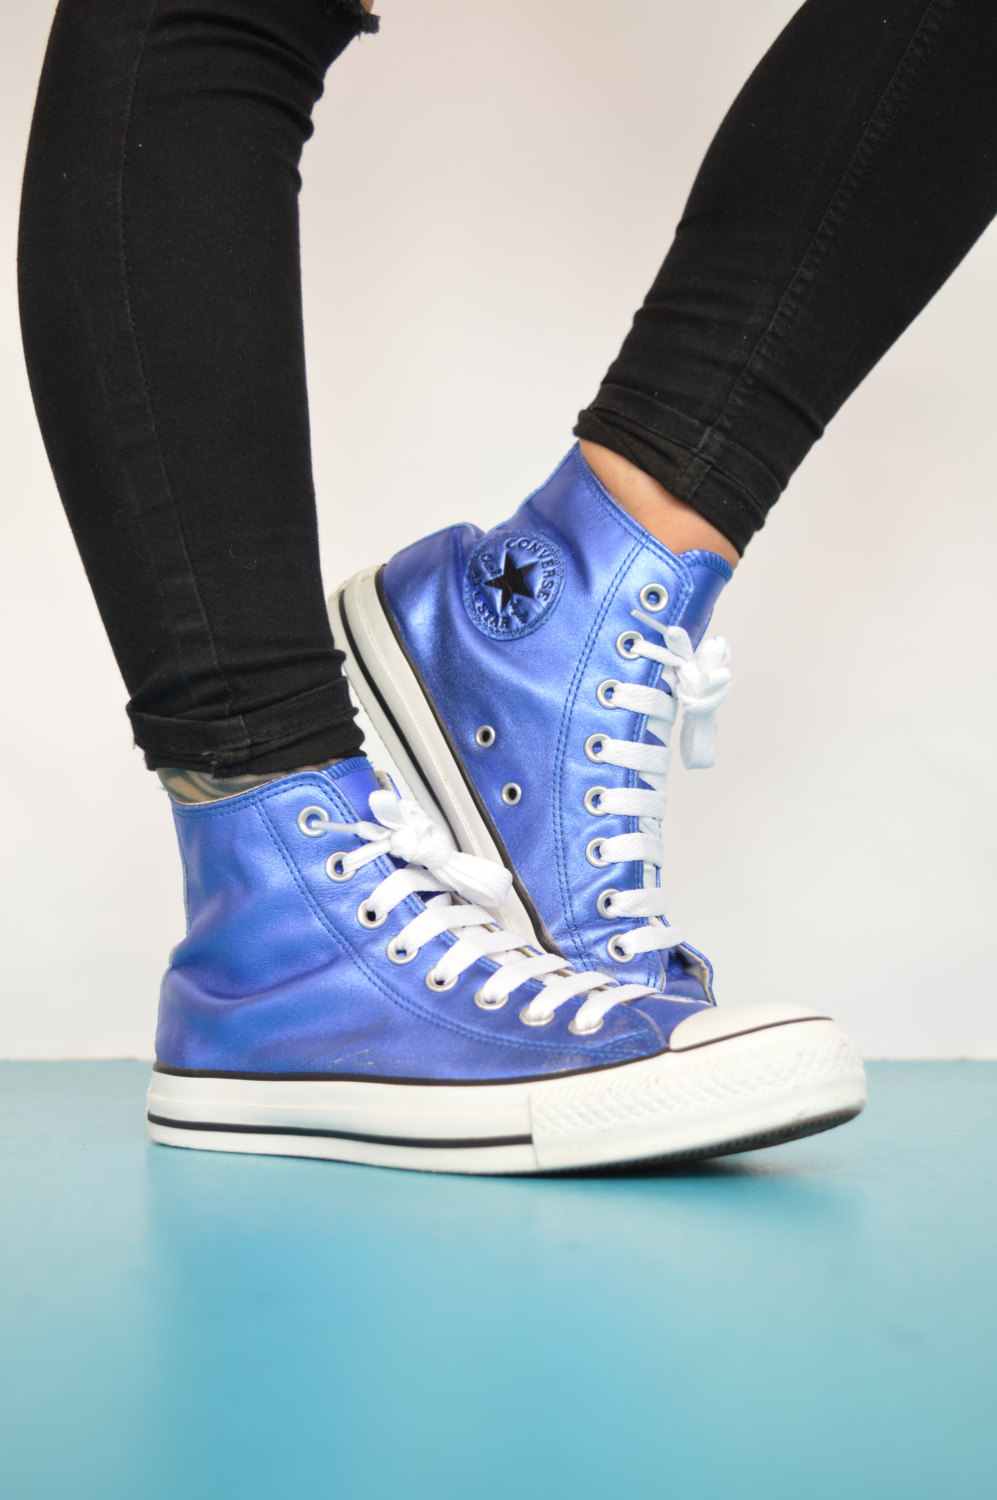 77661f7c443a Vintage 1990s Metallic Blue Converse Hi-Tops Trainers Sneakers All ...